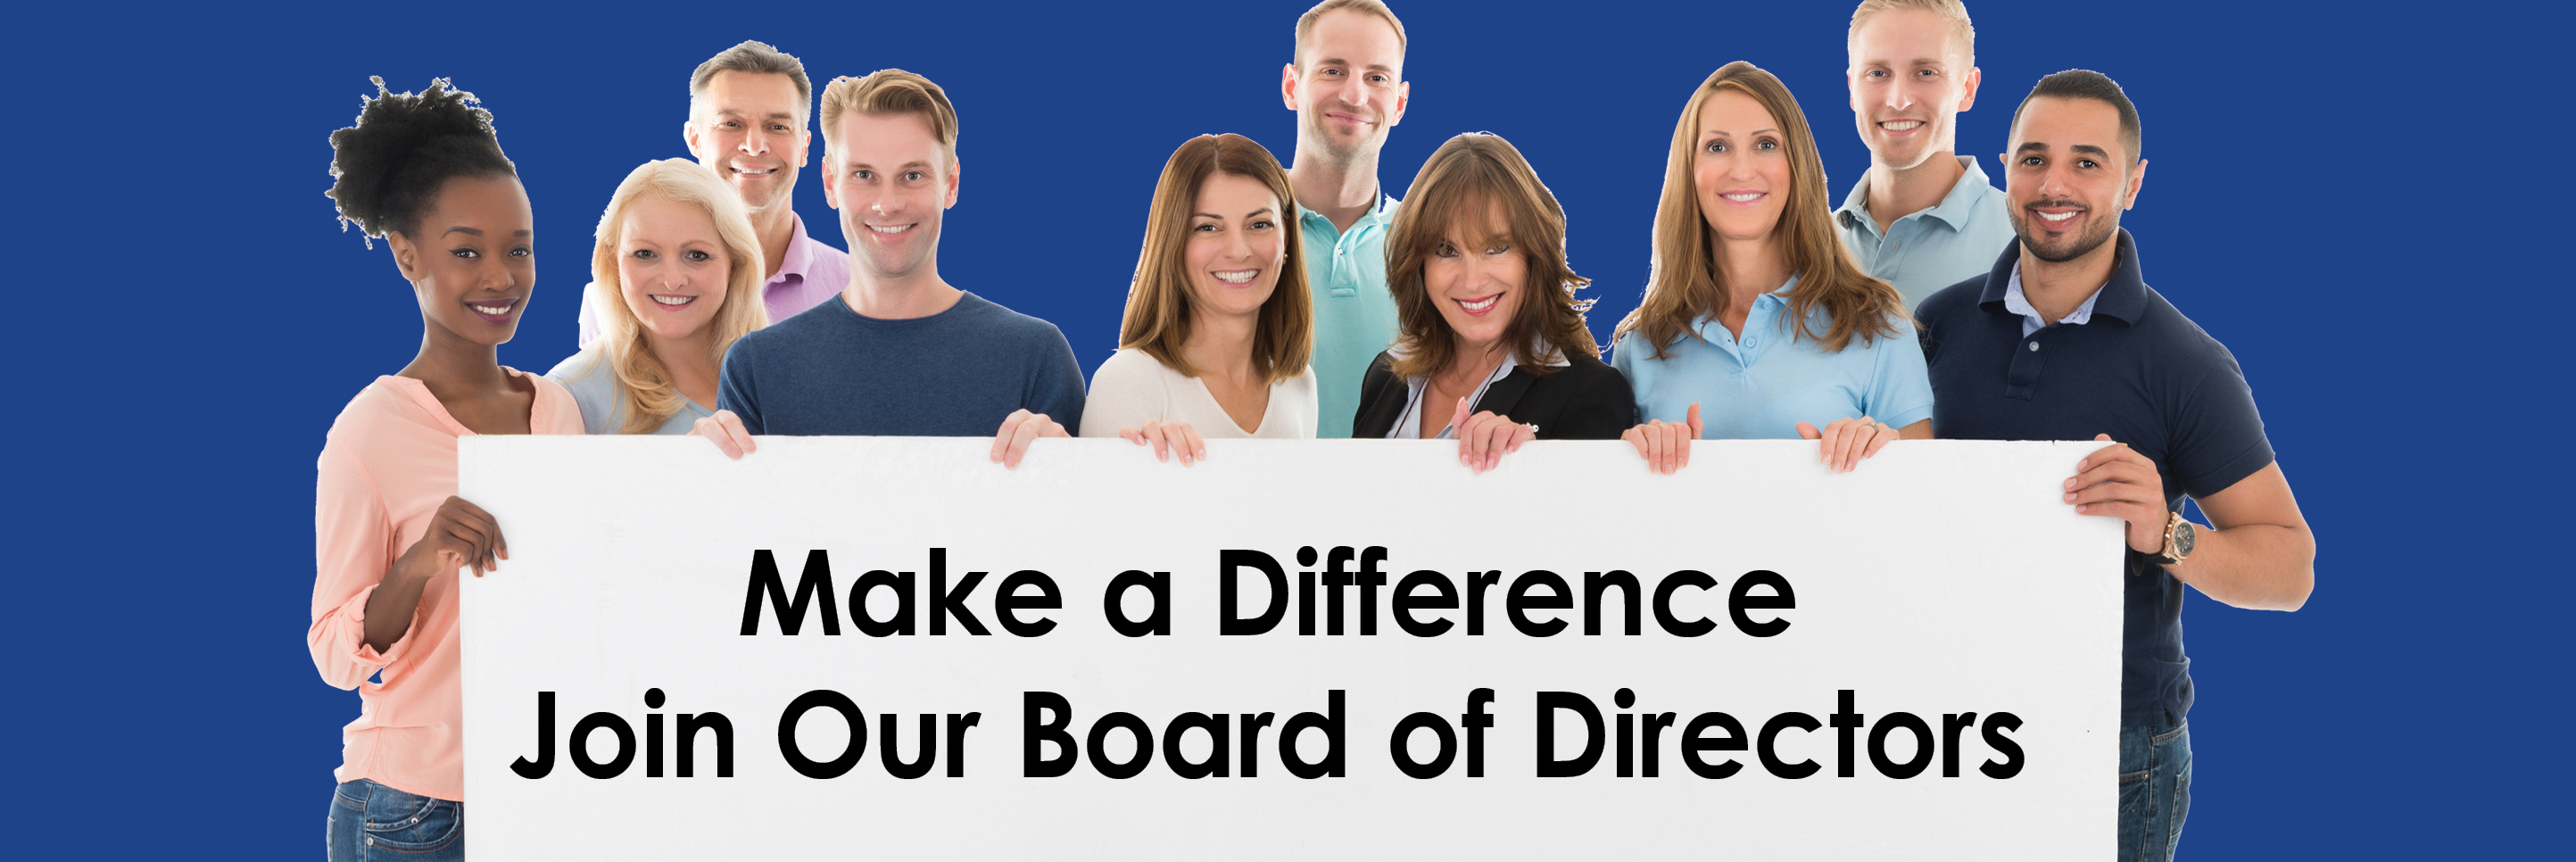 Make a difference, Join our Board of Directors